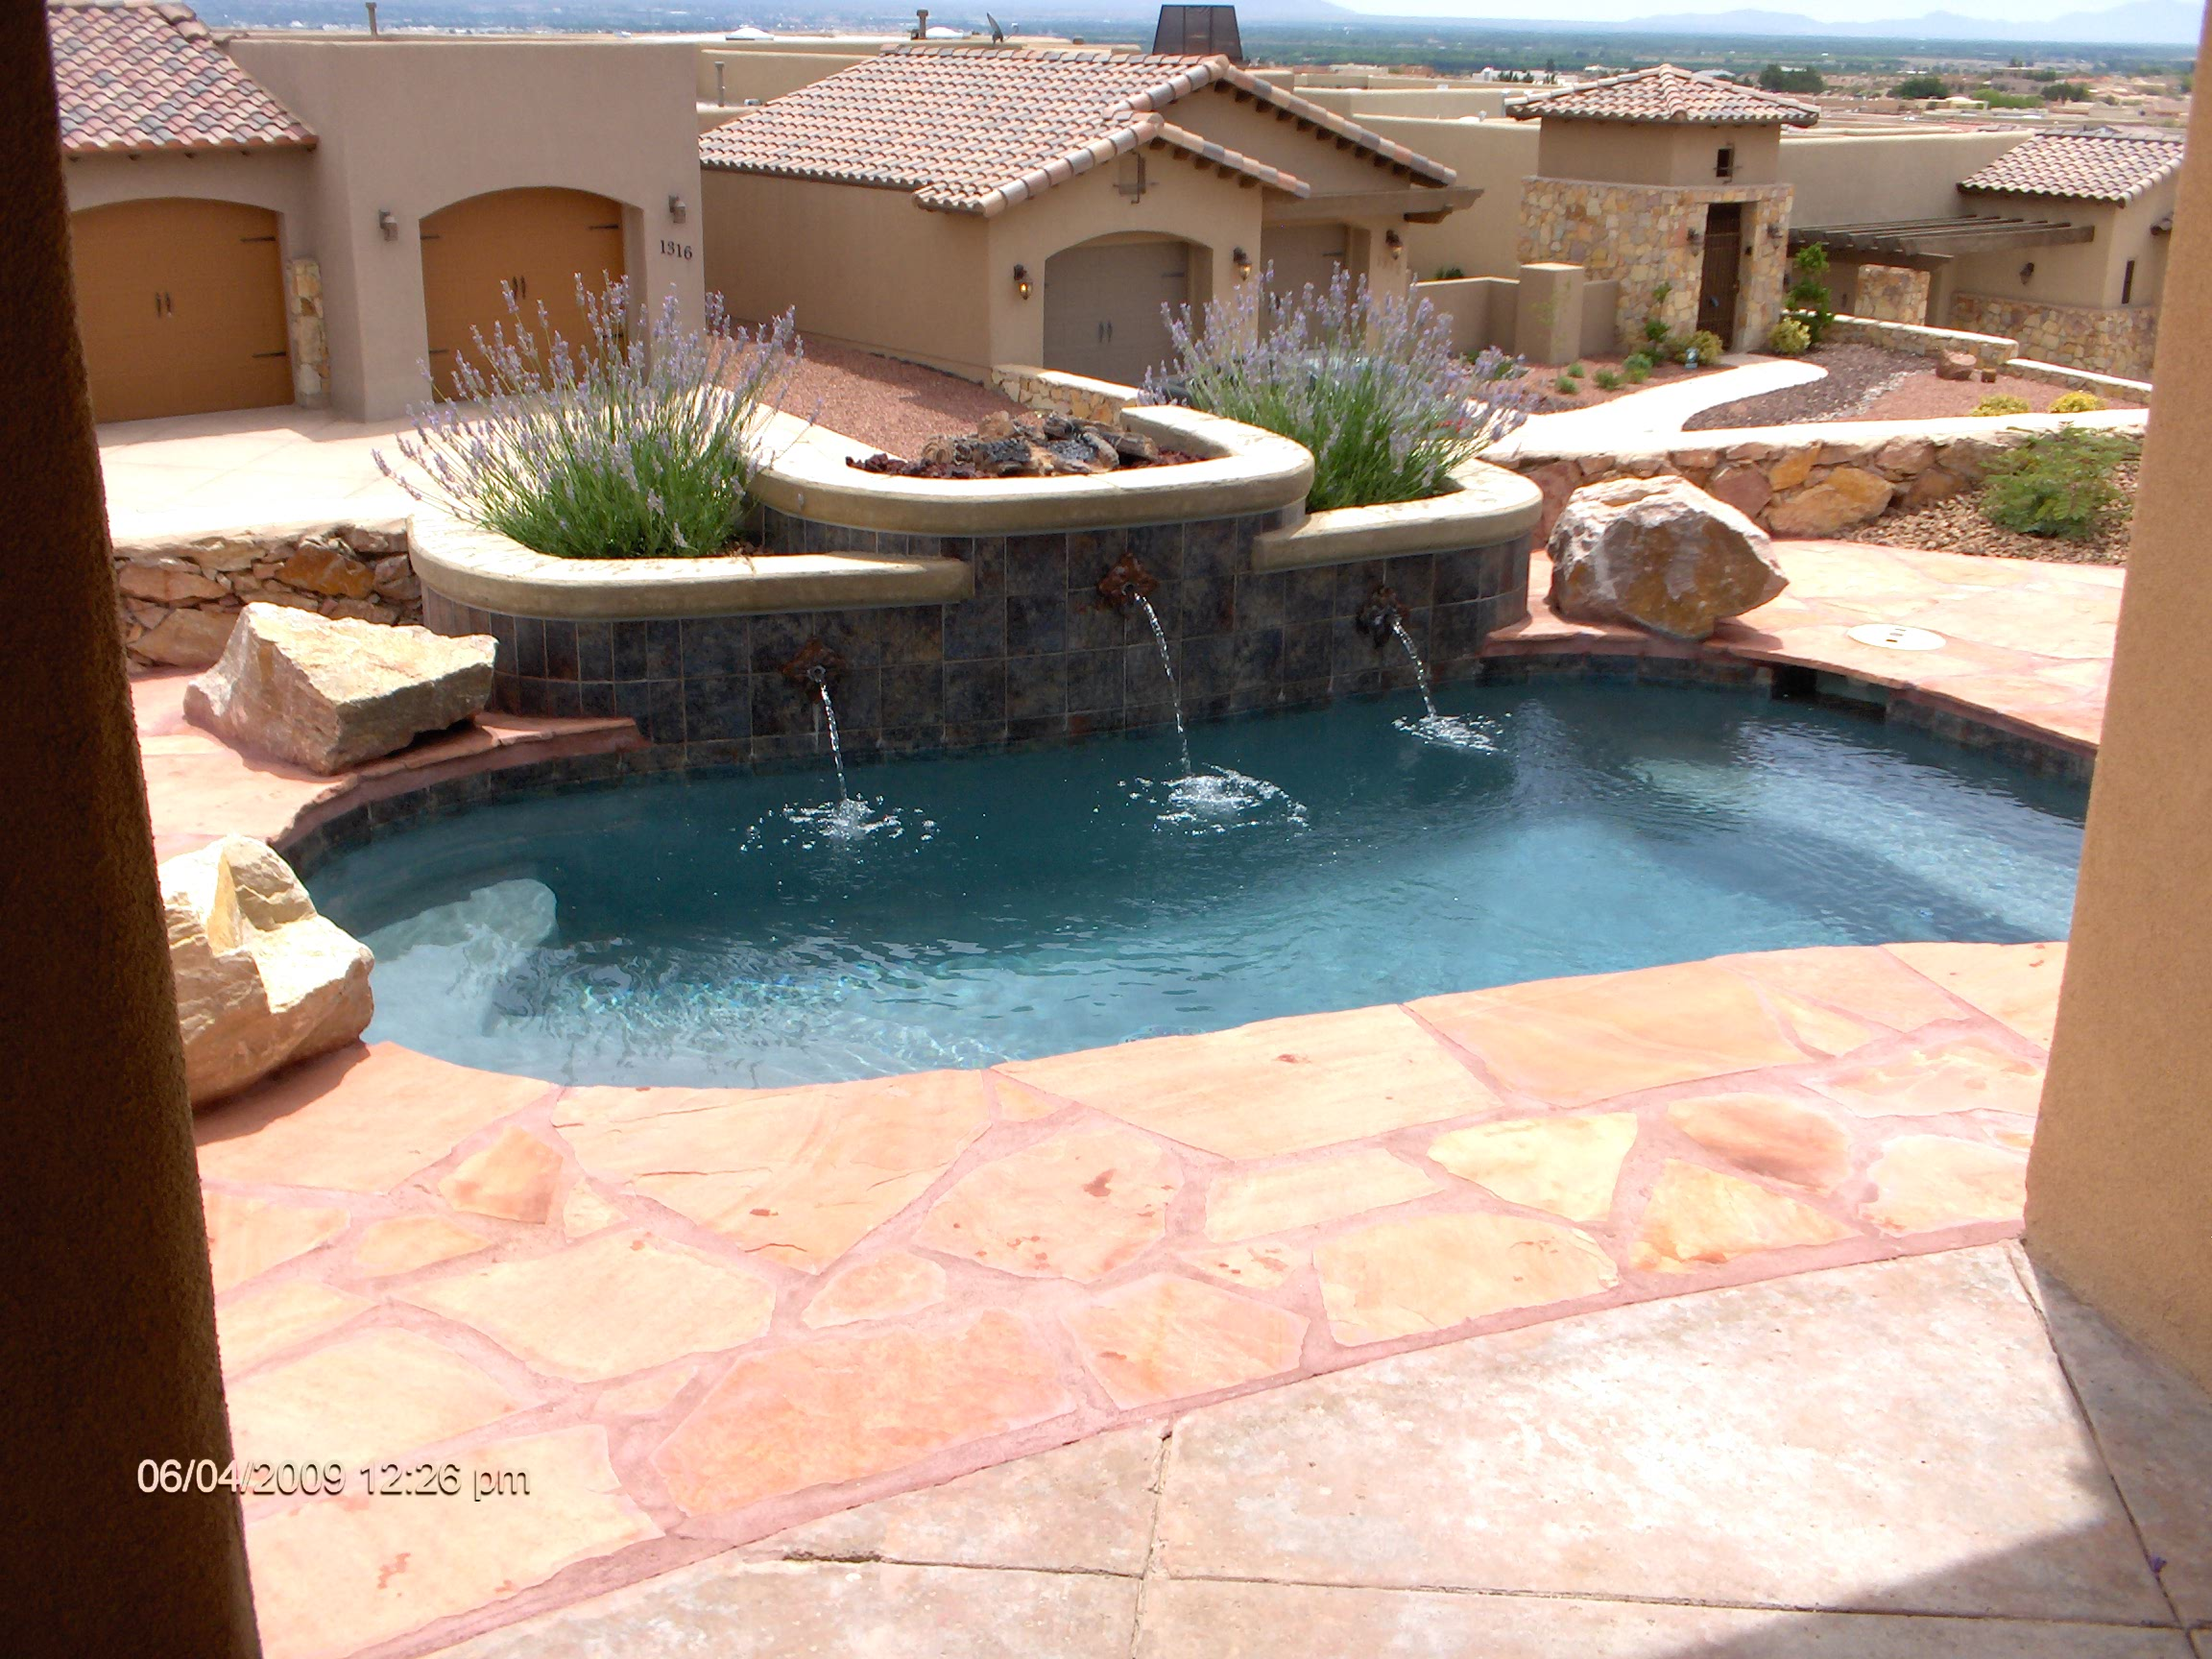 Merveilleux Pools By Design Photos. Pools